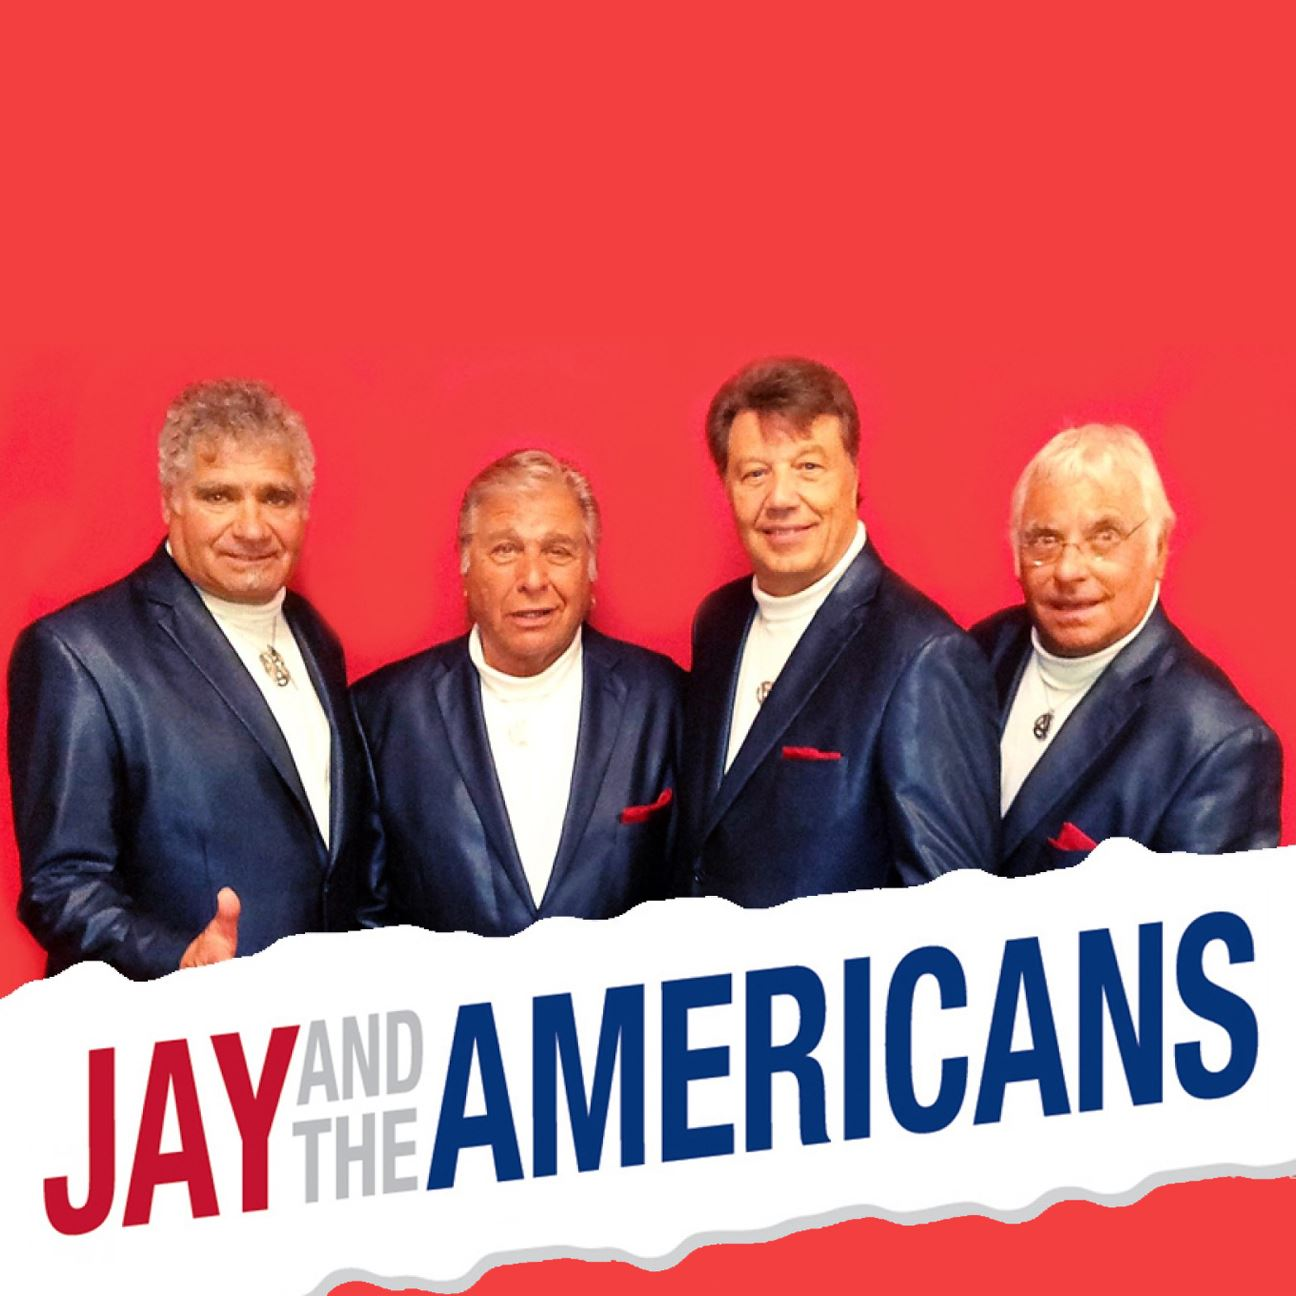 Jay and the Americans - 9/17-19